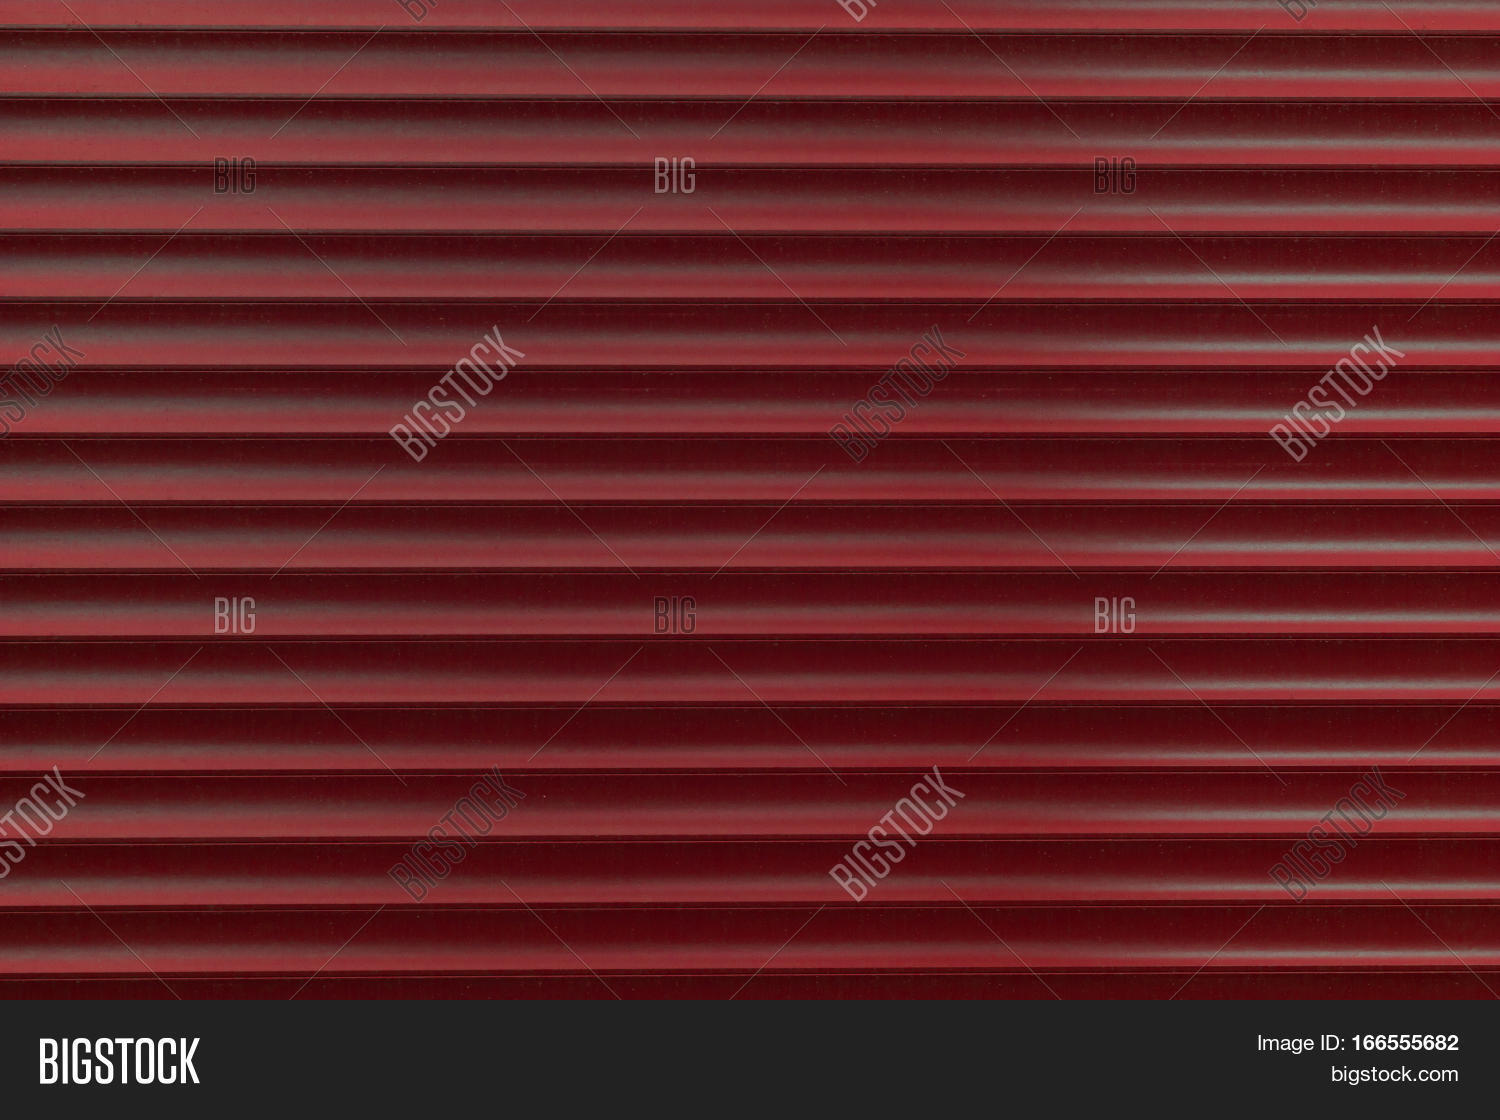 image view public photo stock en pictures free background red blinds domain